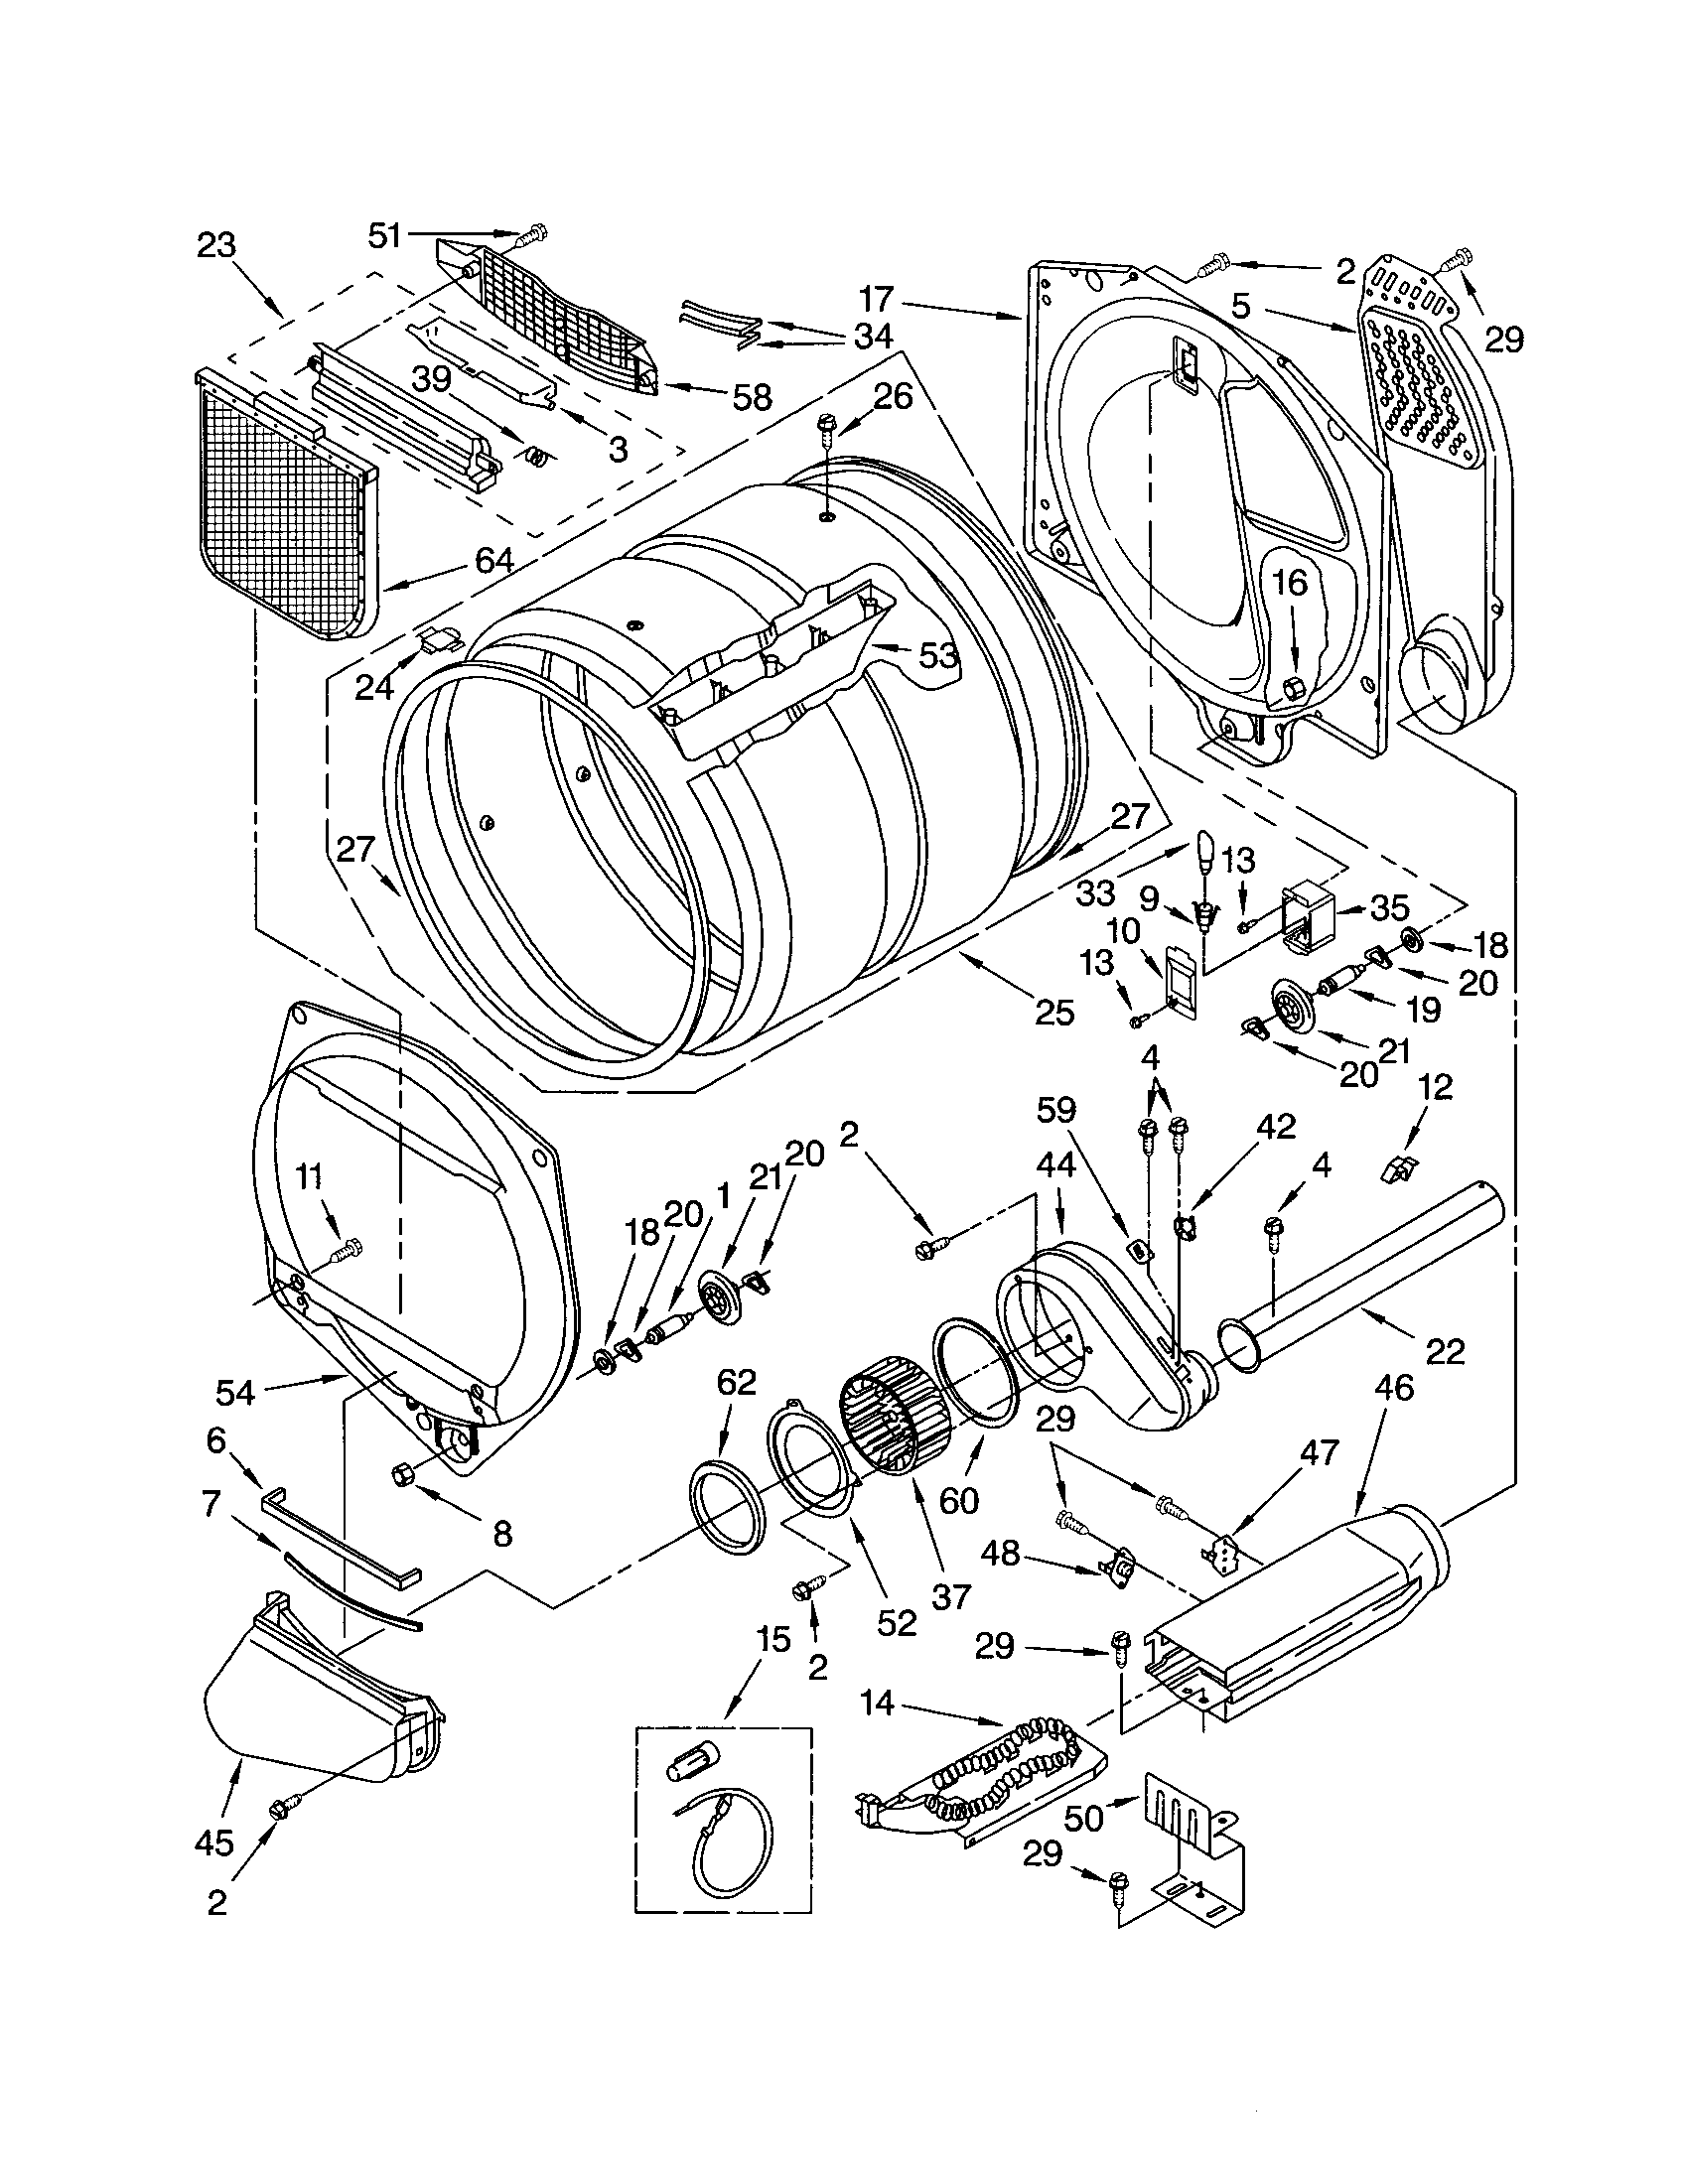 Diagram Oven Wiring Ge Jbp79sod1ss Diagrams Wire Wall Nmb Mat 4715kl 04w B56 37 Profile